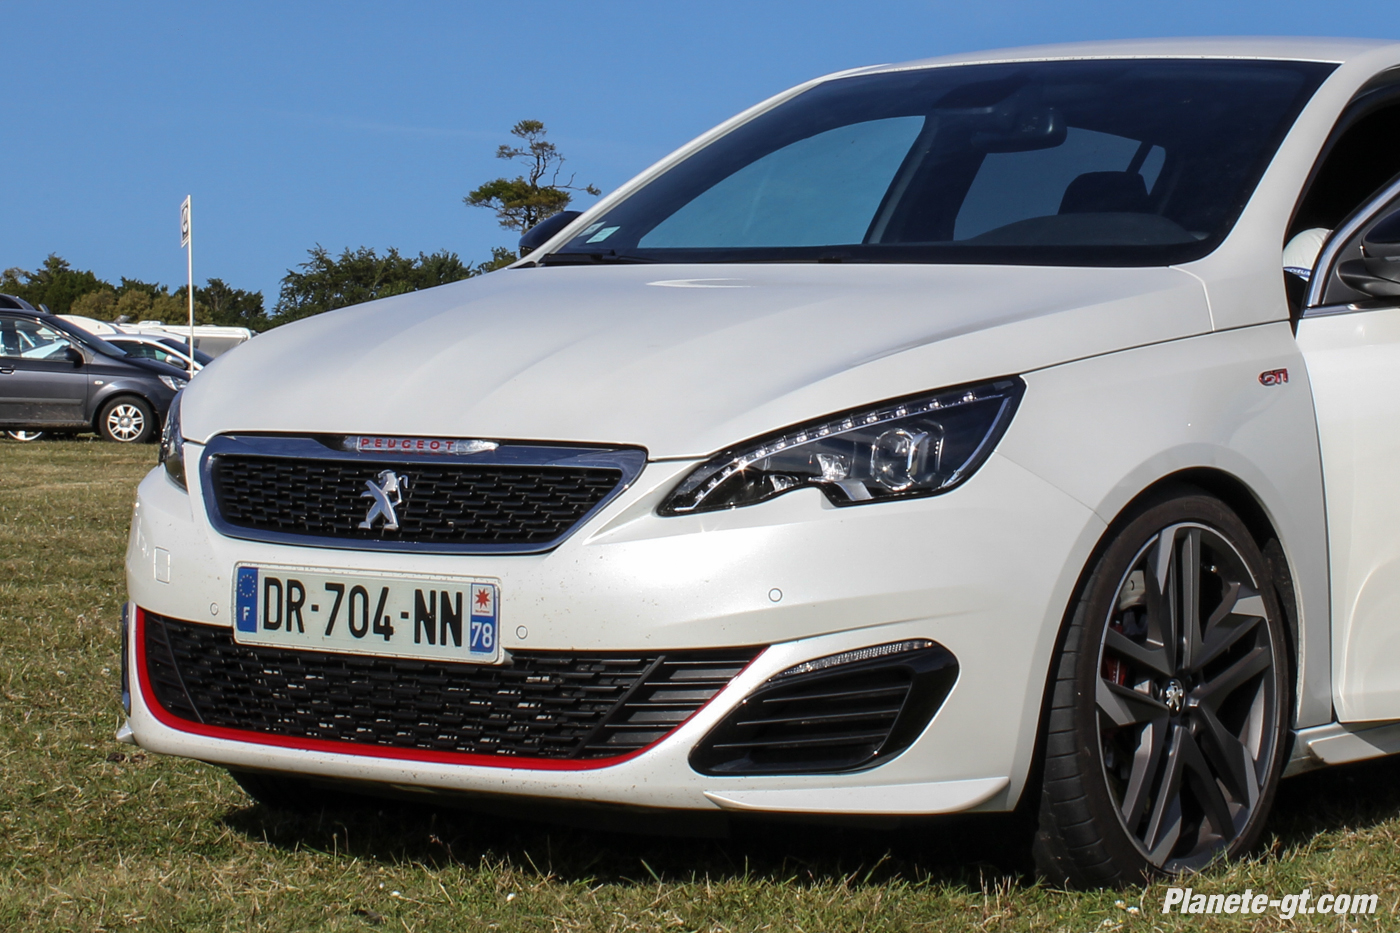 peugeot 308 gti la version blanc nacr e de sortie plan te. Black Bedroom Furniture Sets. Home Design Ideas